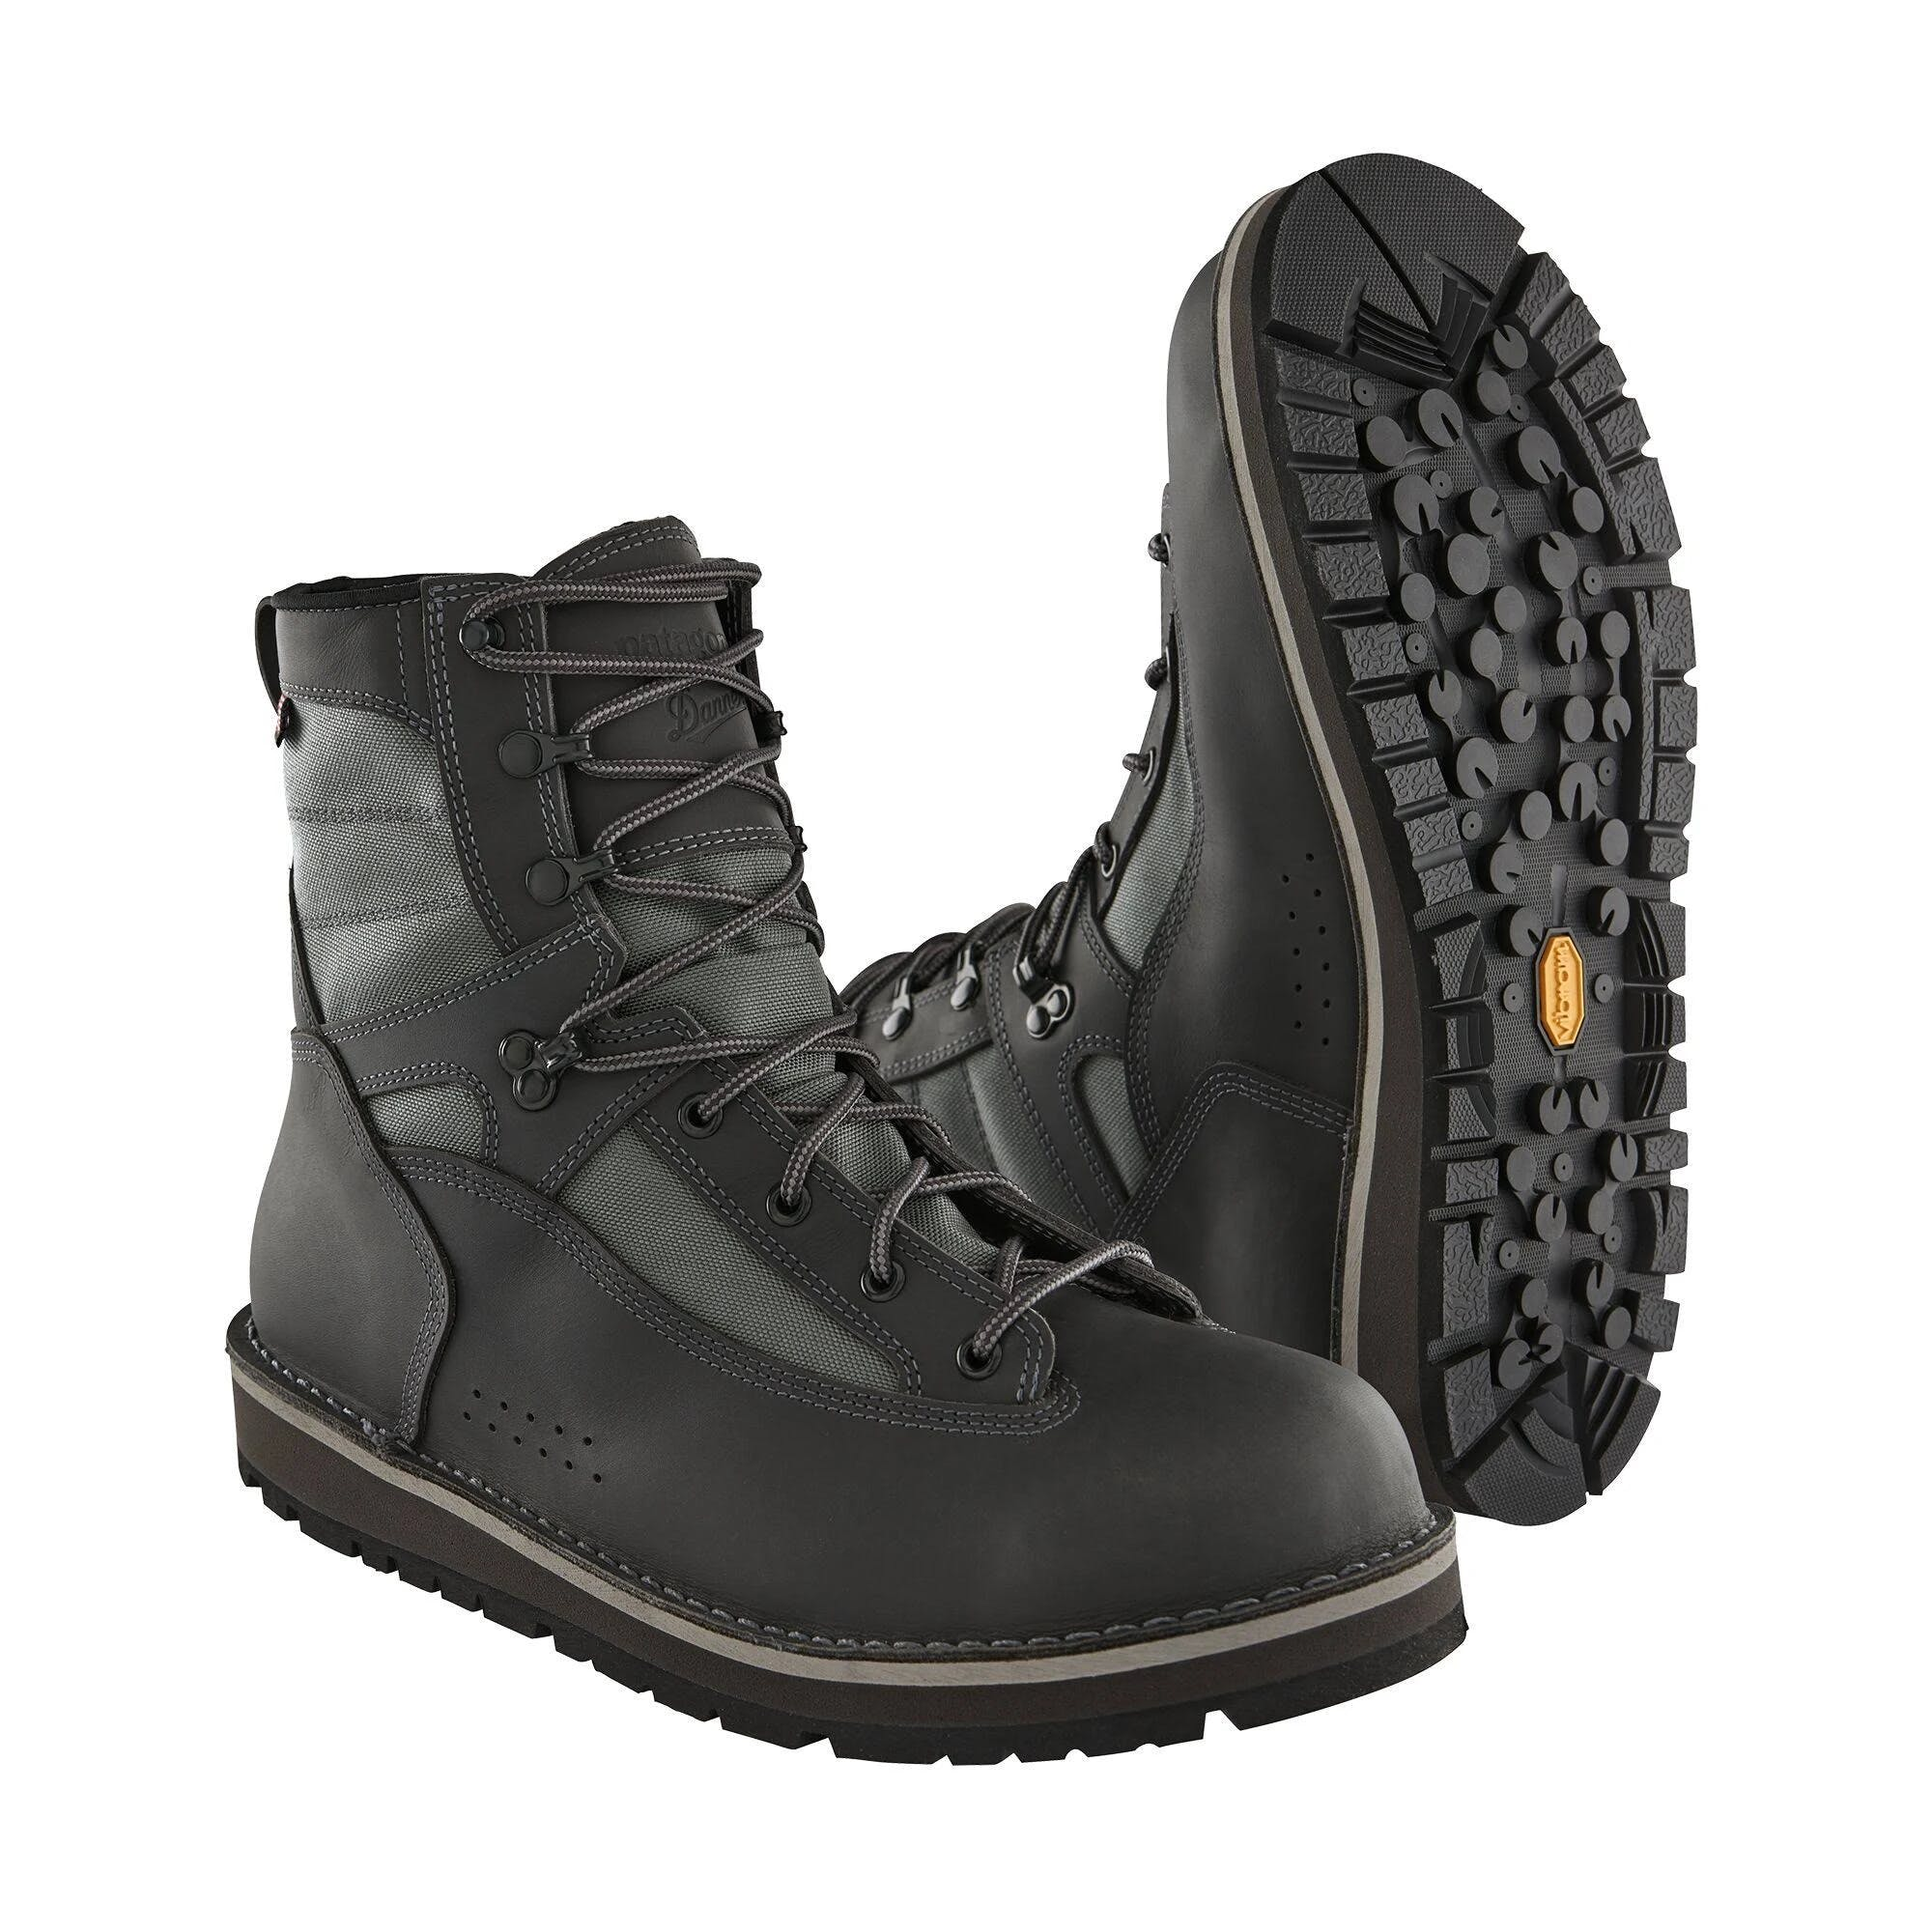 Patagonia Foot Tractor Wading Boots-Sticky Rubber - 12